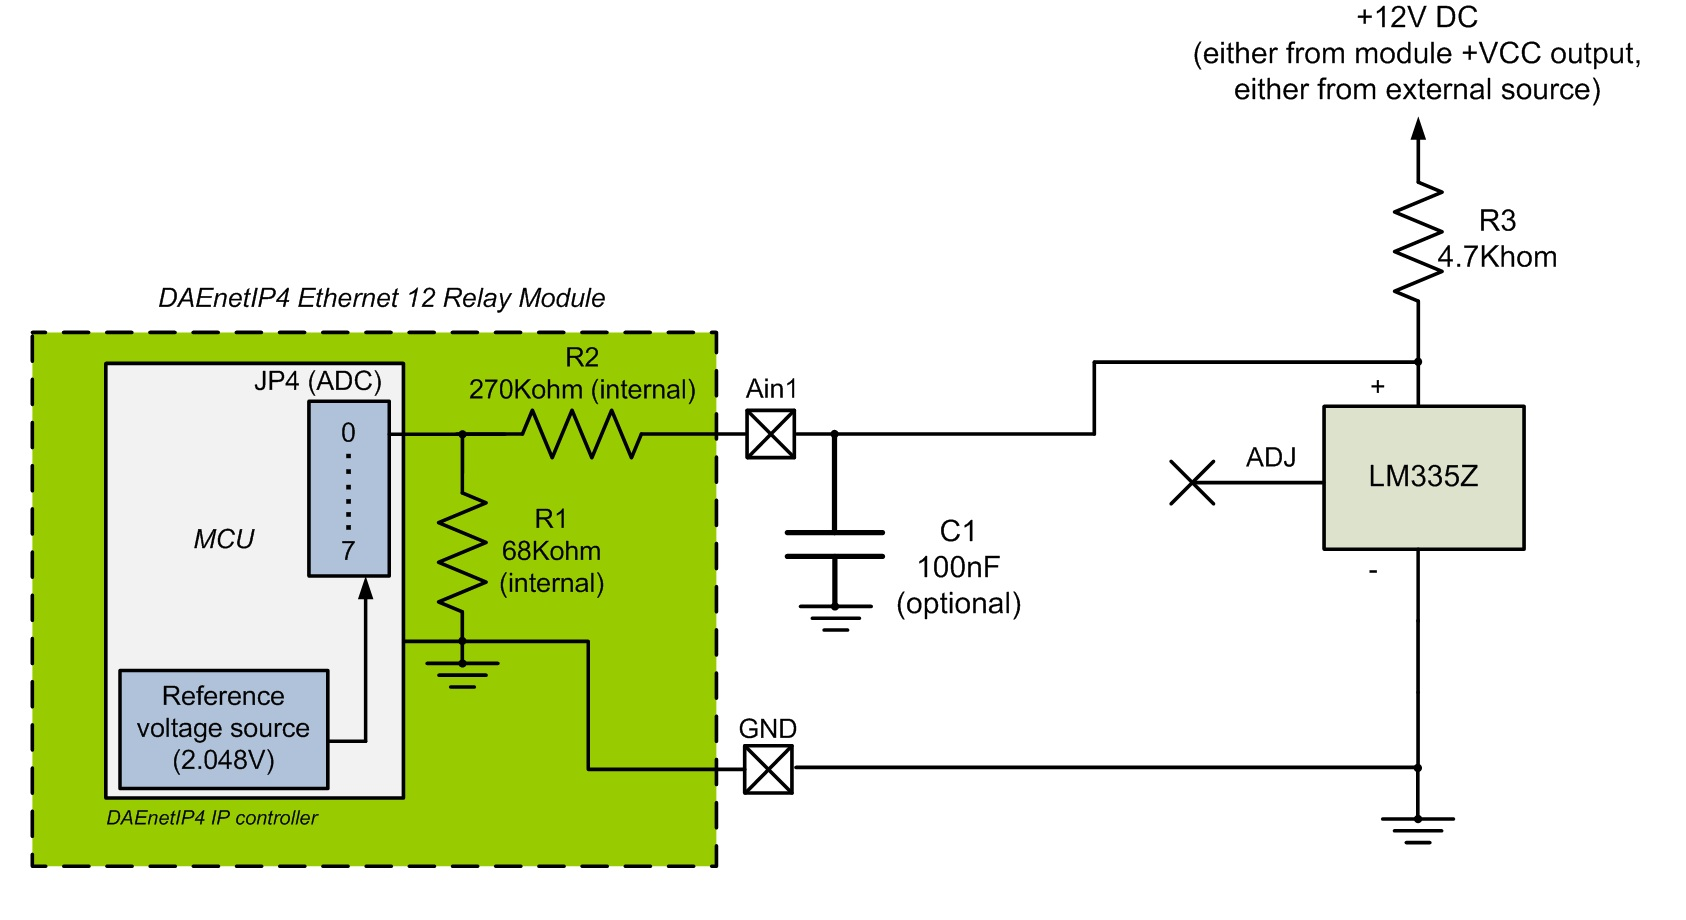 Dae An010 Connecting Analog Sensors To Daenetip4 Snmp 12 Relay Digital Temperature Meter Using Lm335 Or Lm135 Lm335z Sensor